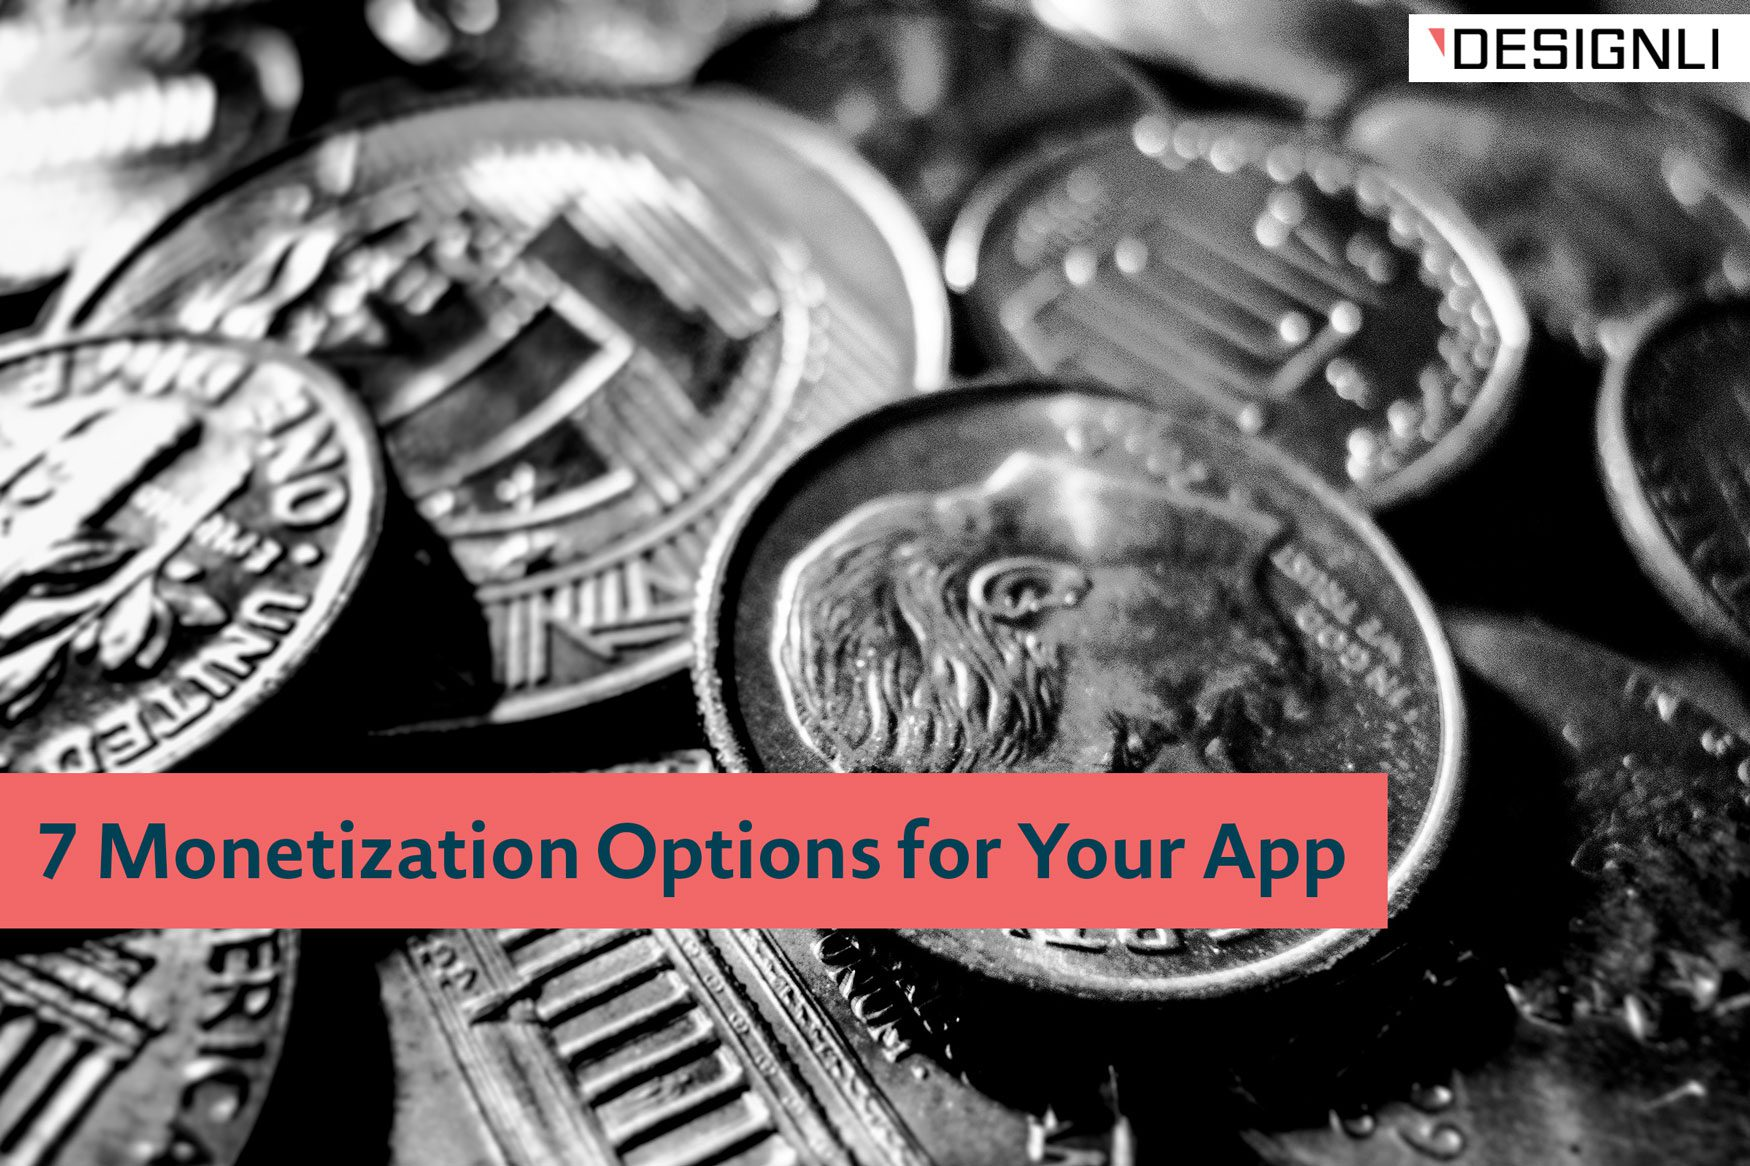 monetization options for your app